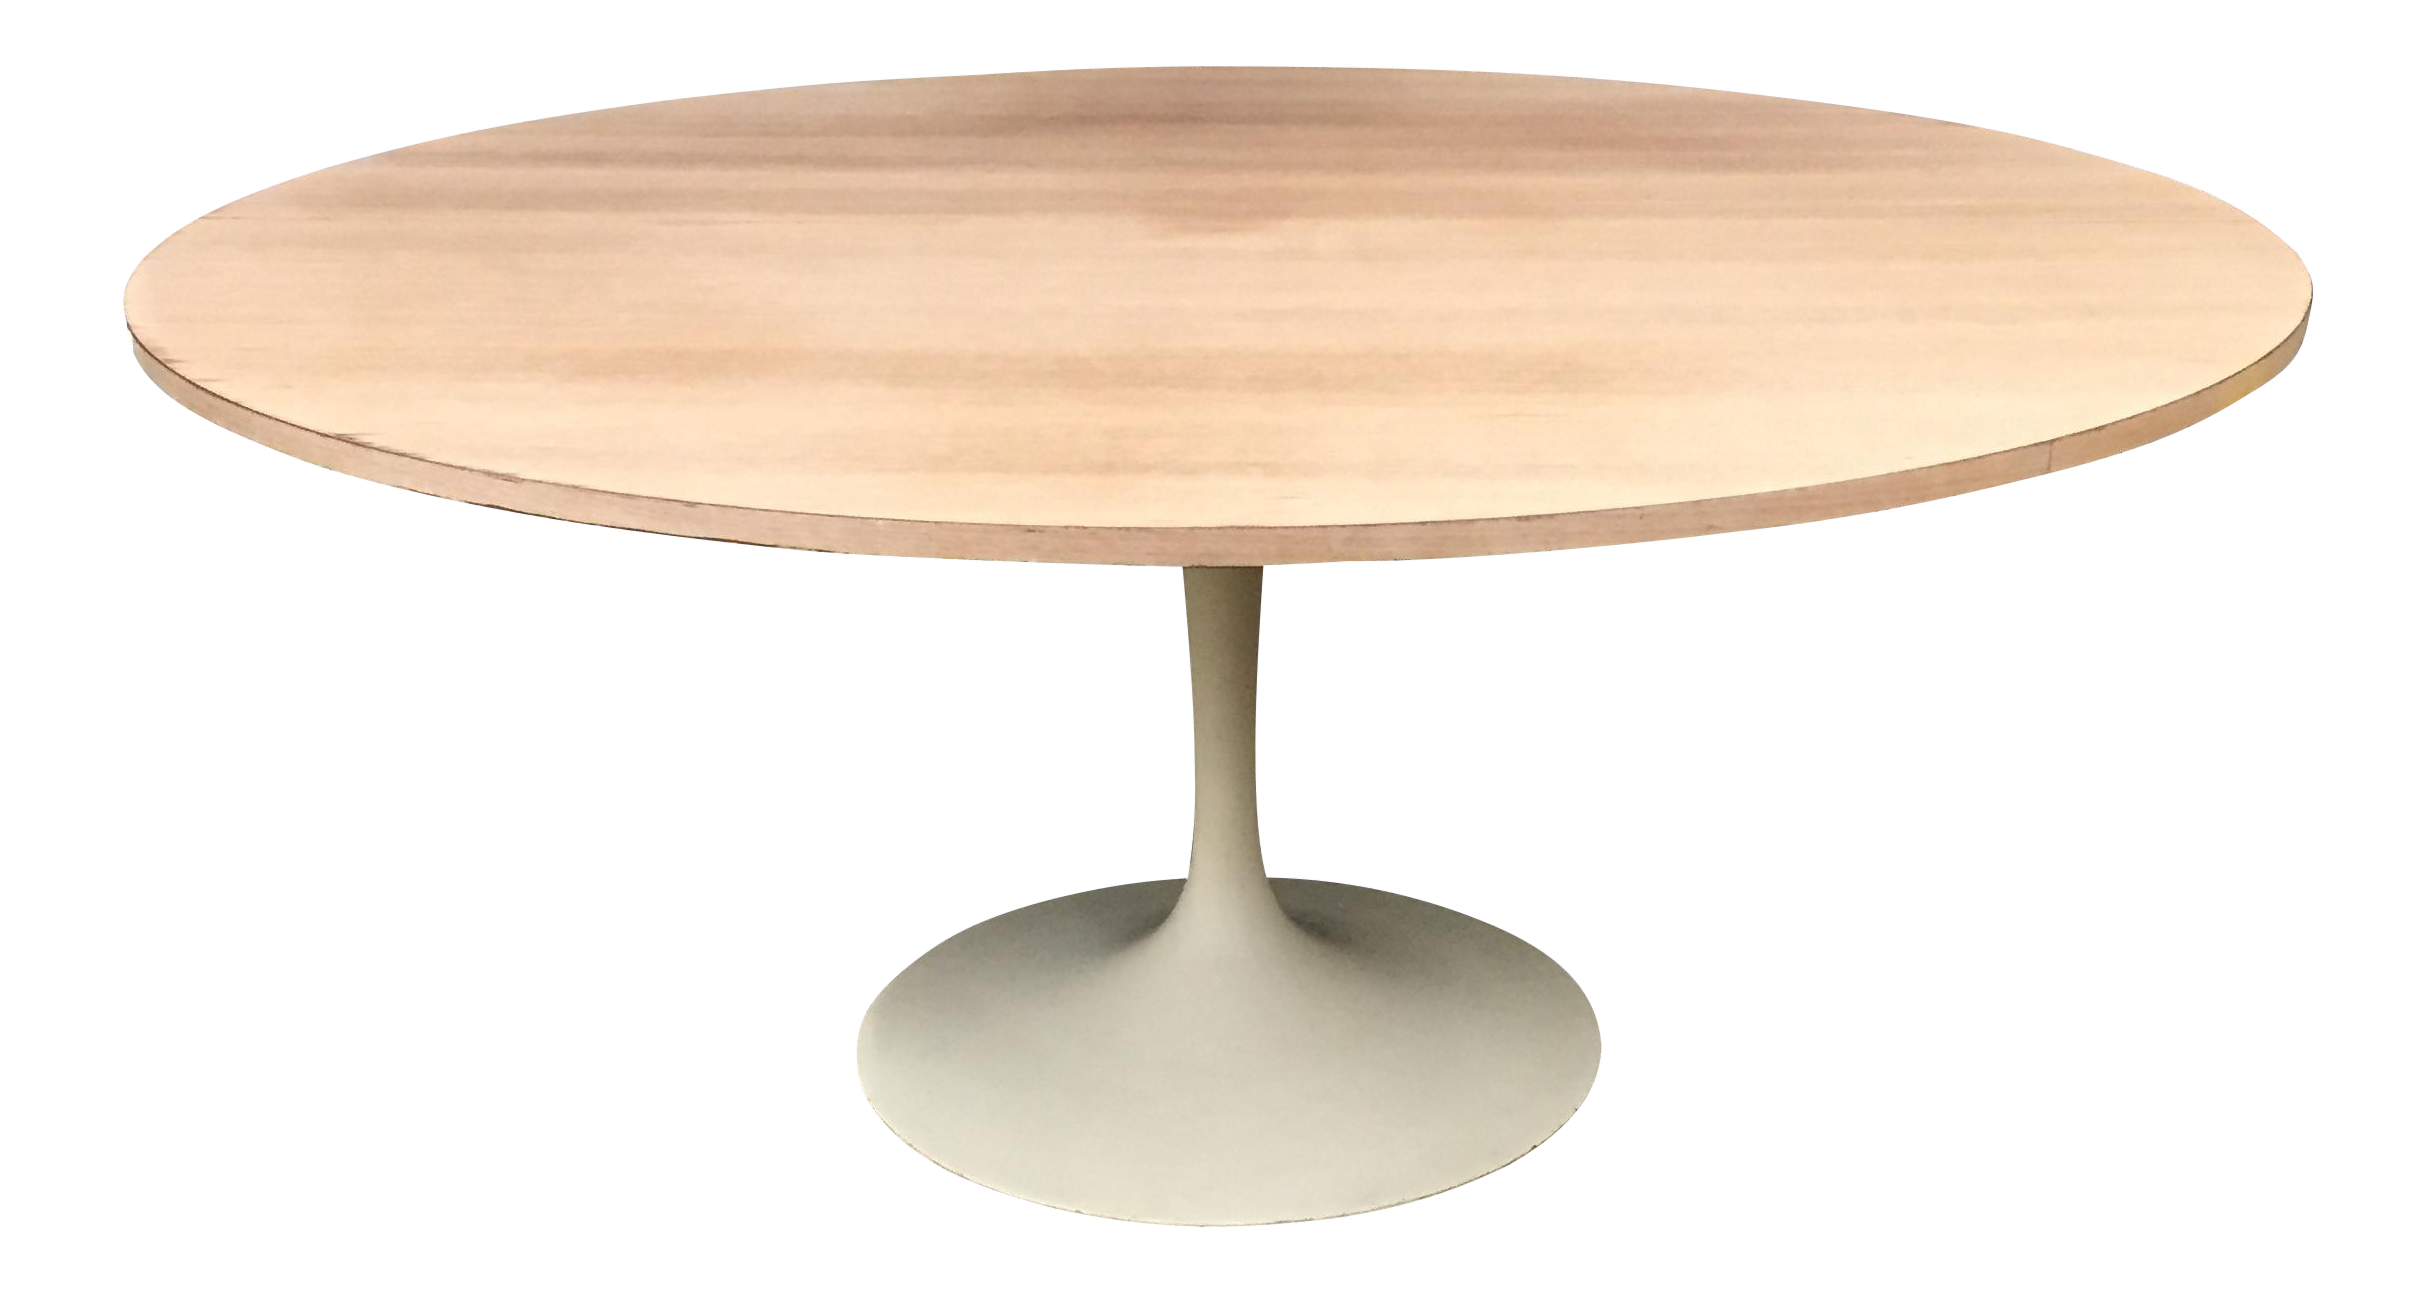 Original KnollEero Saarinen Tulip Table Mesa Comedor Pinterest - Original tulip table